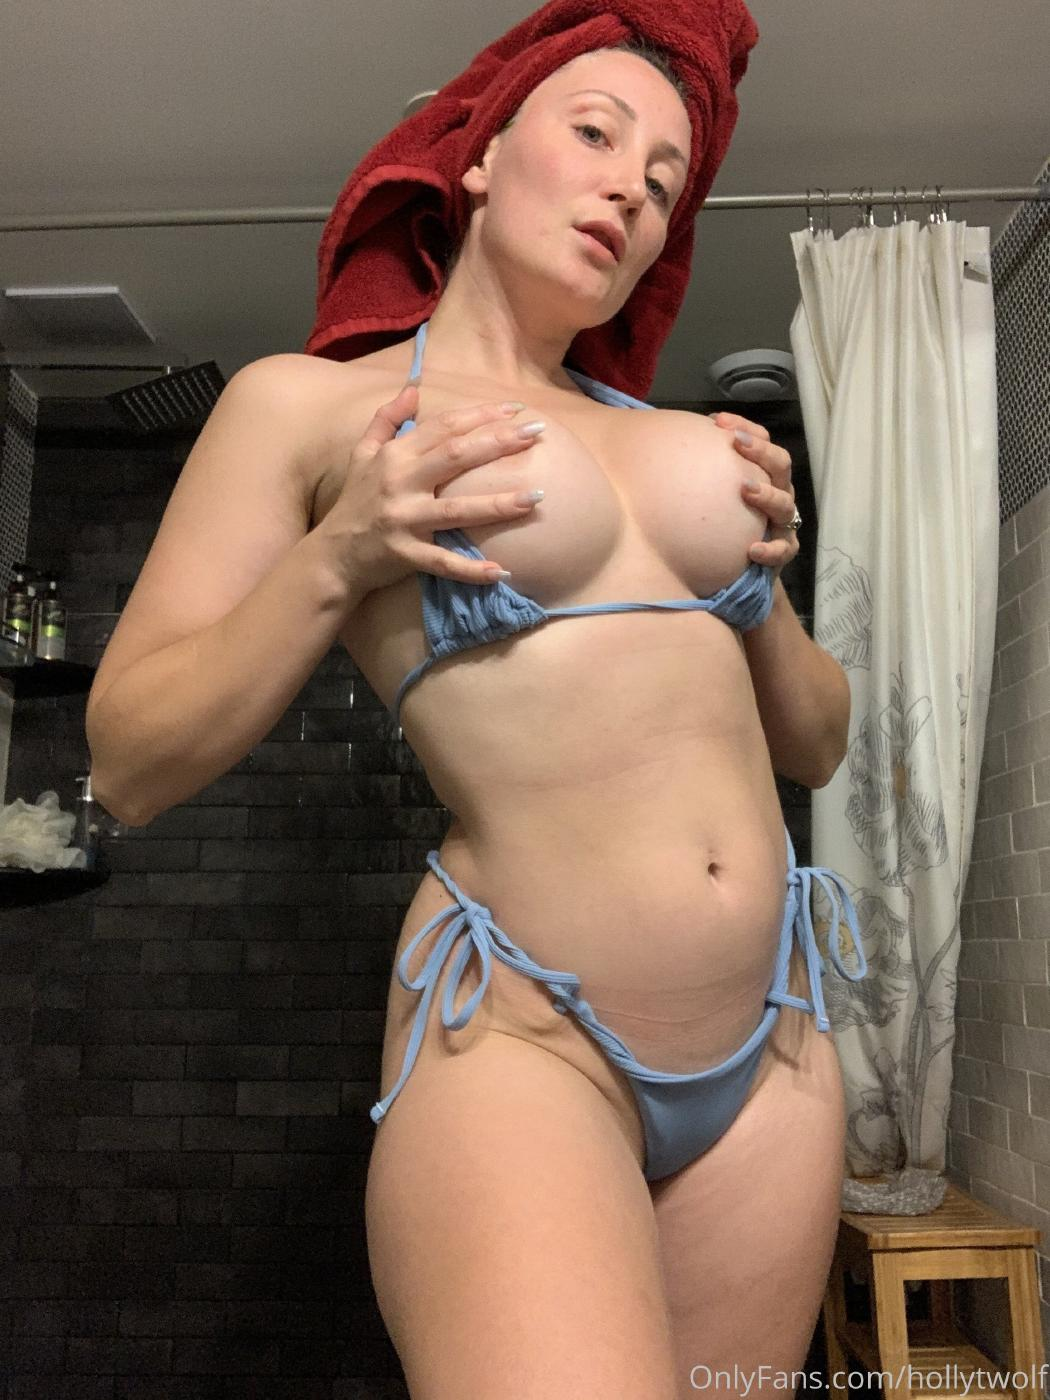 Holly Wolf Nude Onlyfans Content Leaked 0002